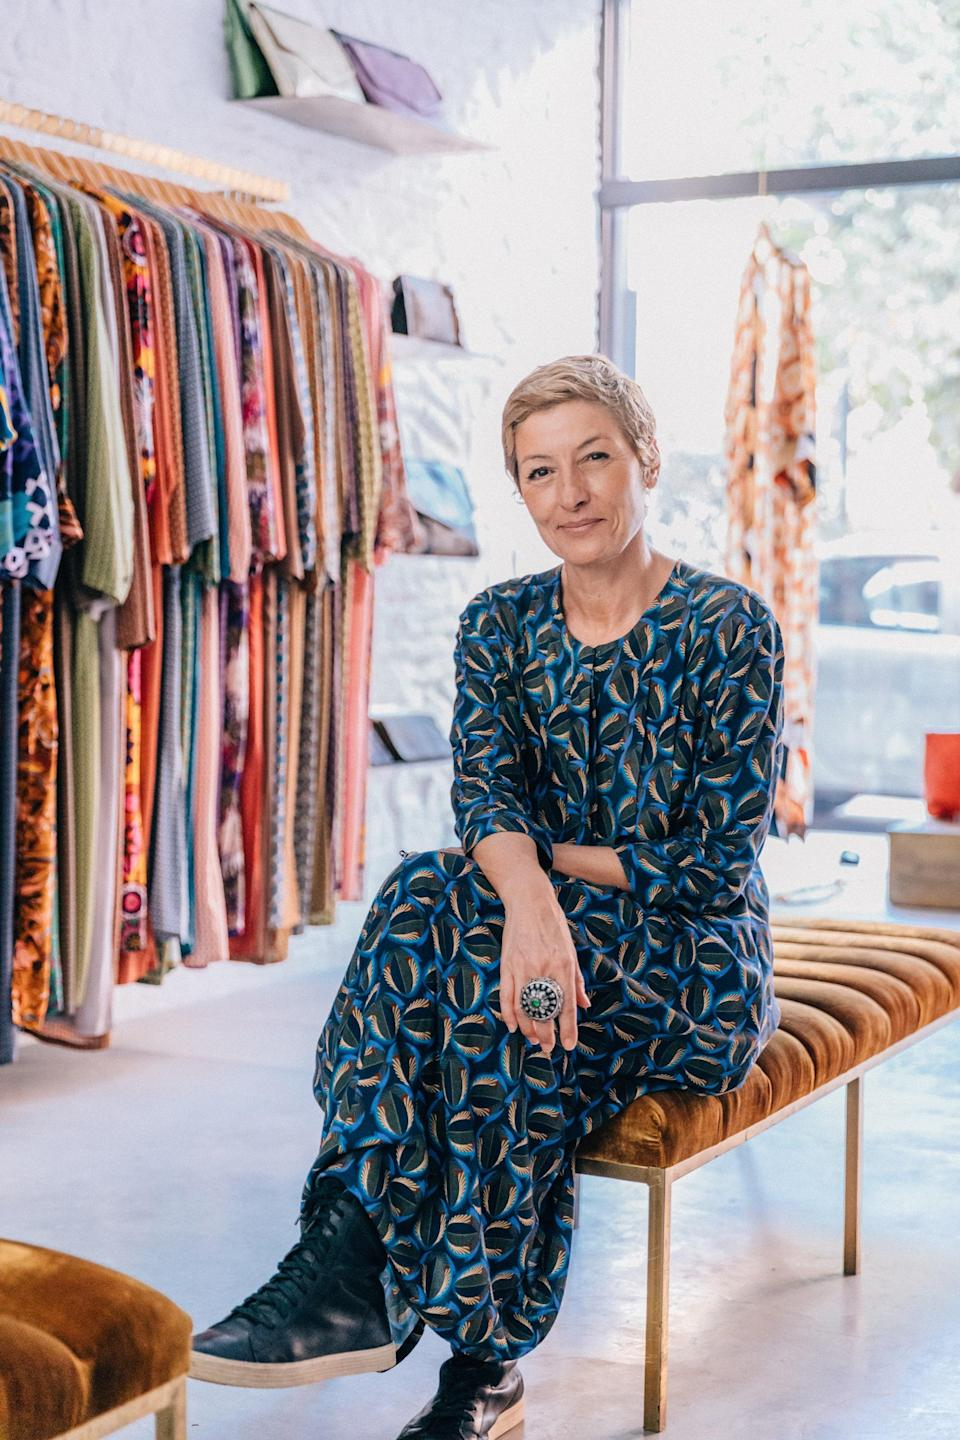 Norya Nemiche at her store, which opened in Marrakech in 2013